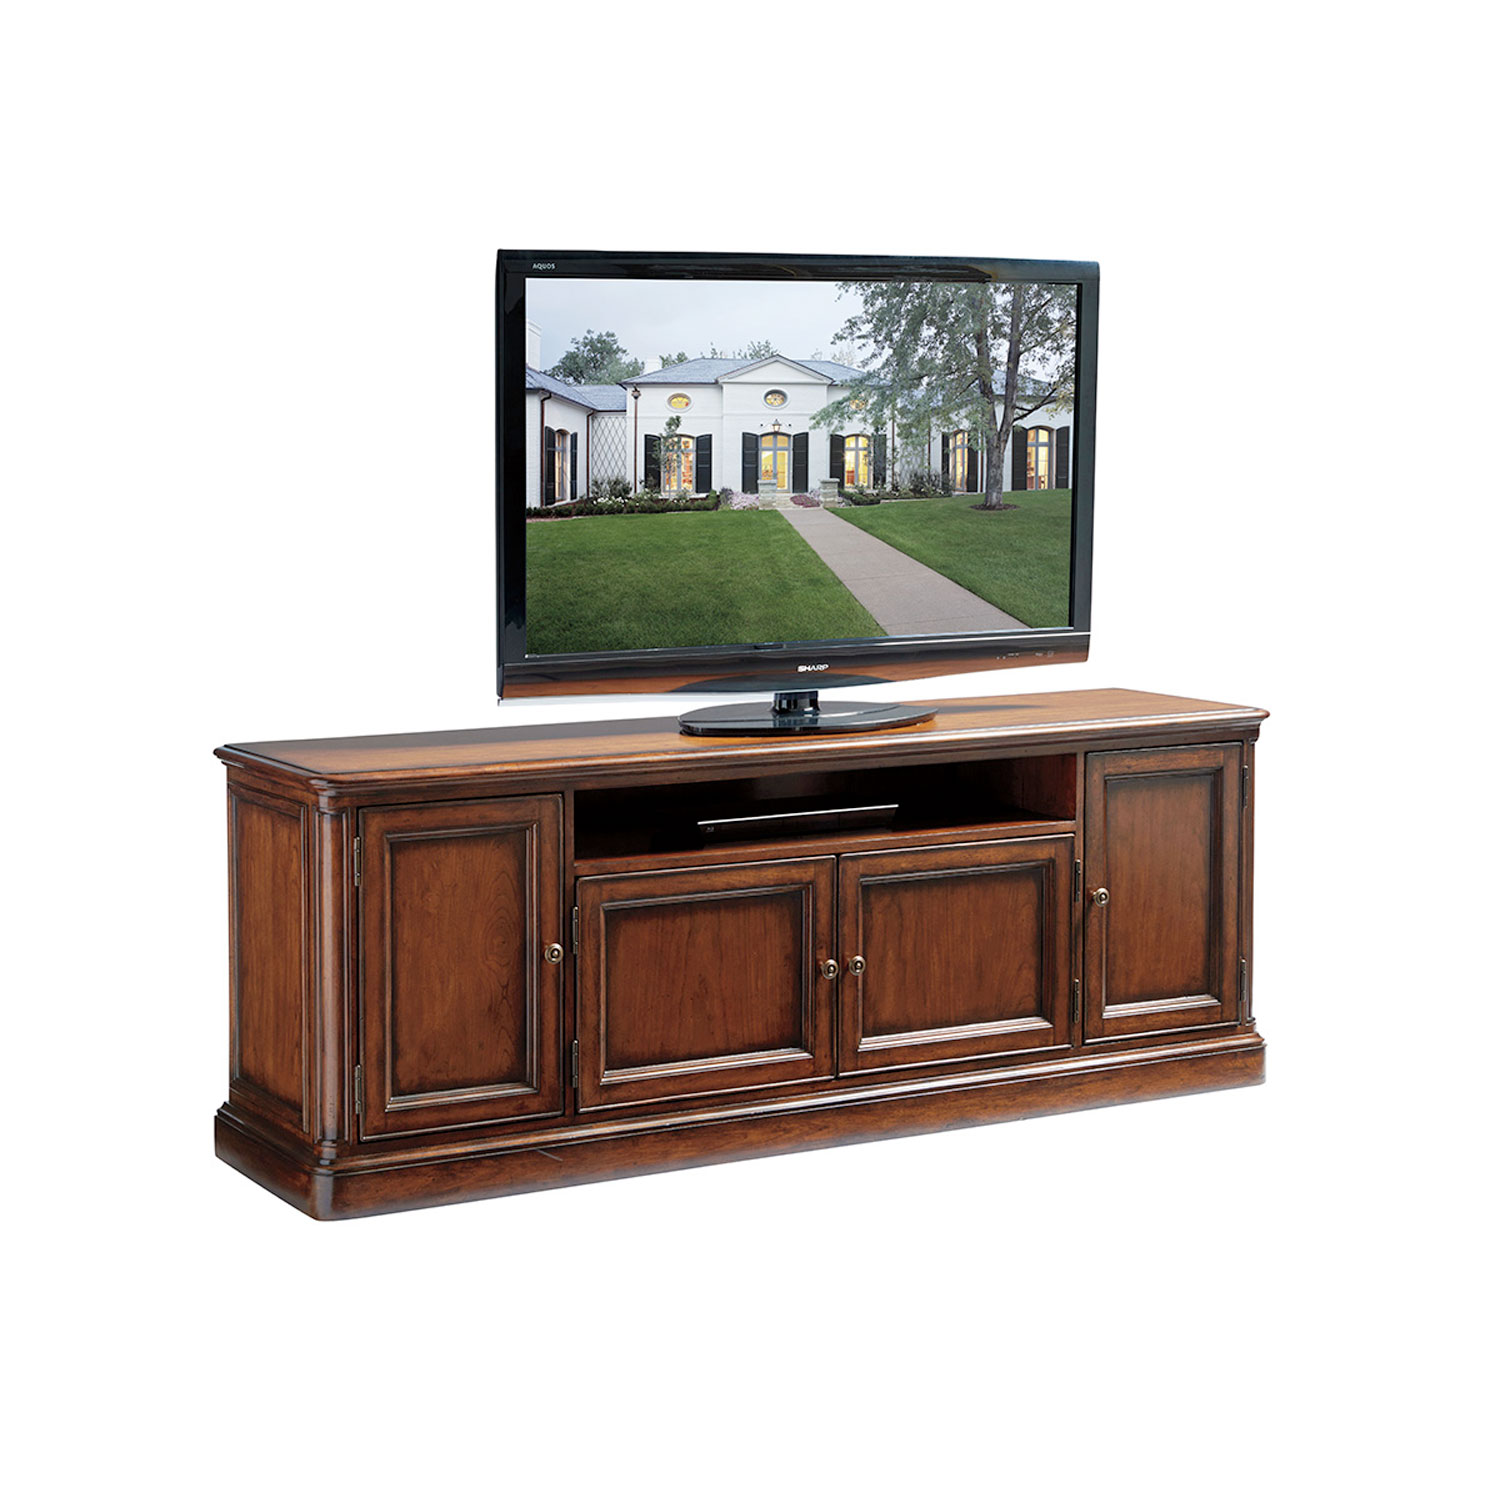 TV Stands & Cabinets Category